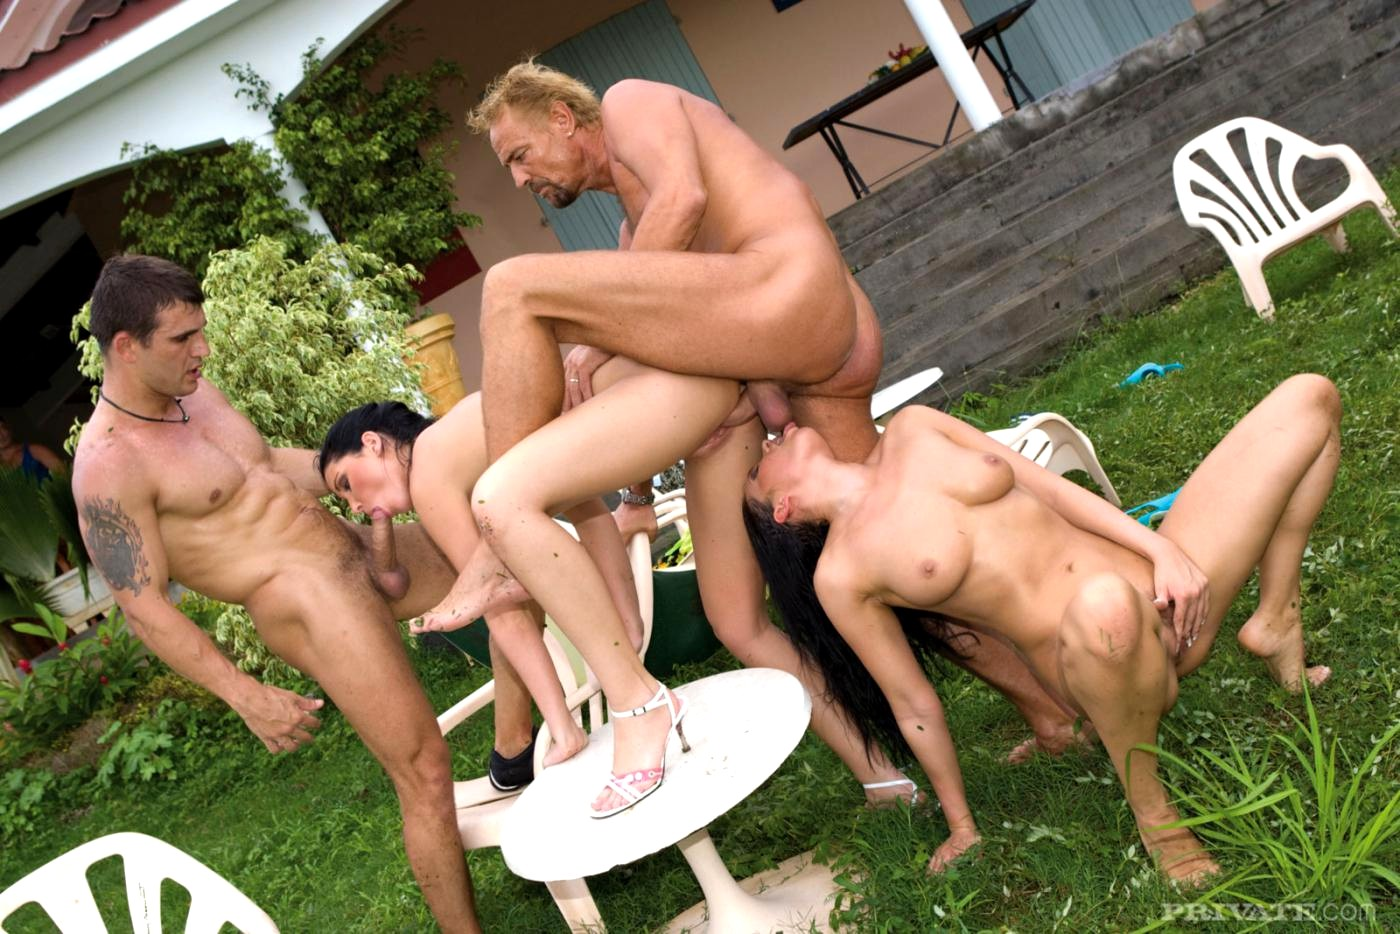 penetration-van-female-public-group-sex